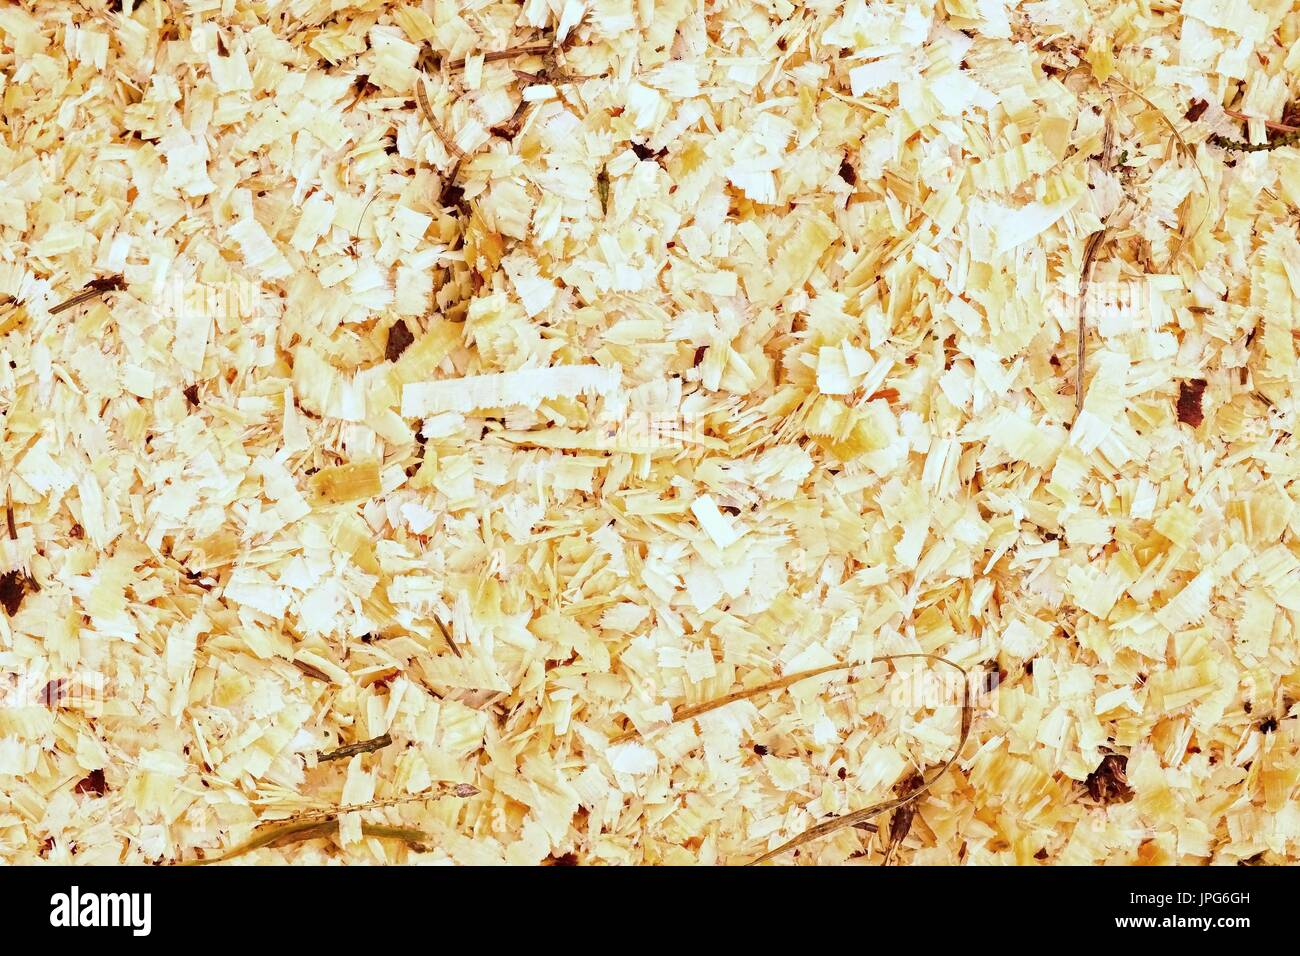 Sawdust Of Dry Alder Wood With Pieces Of Dry Brown Bark On Ground